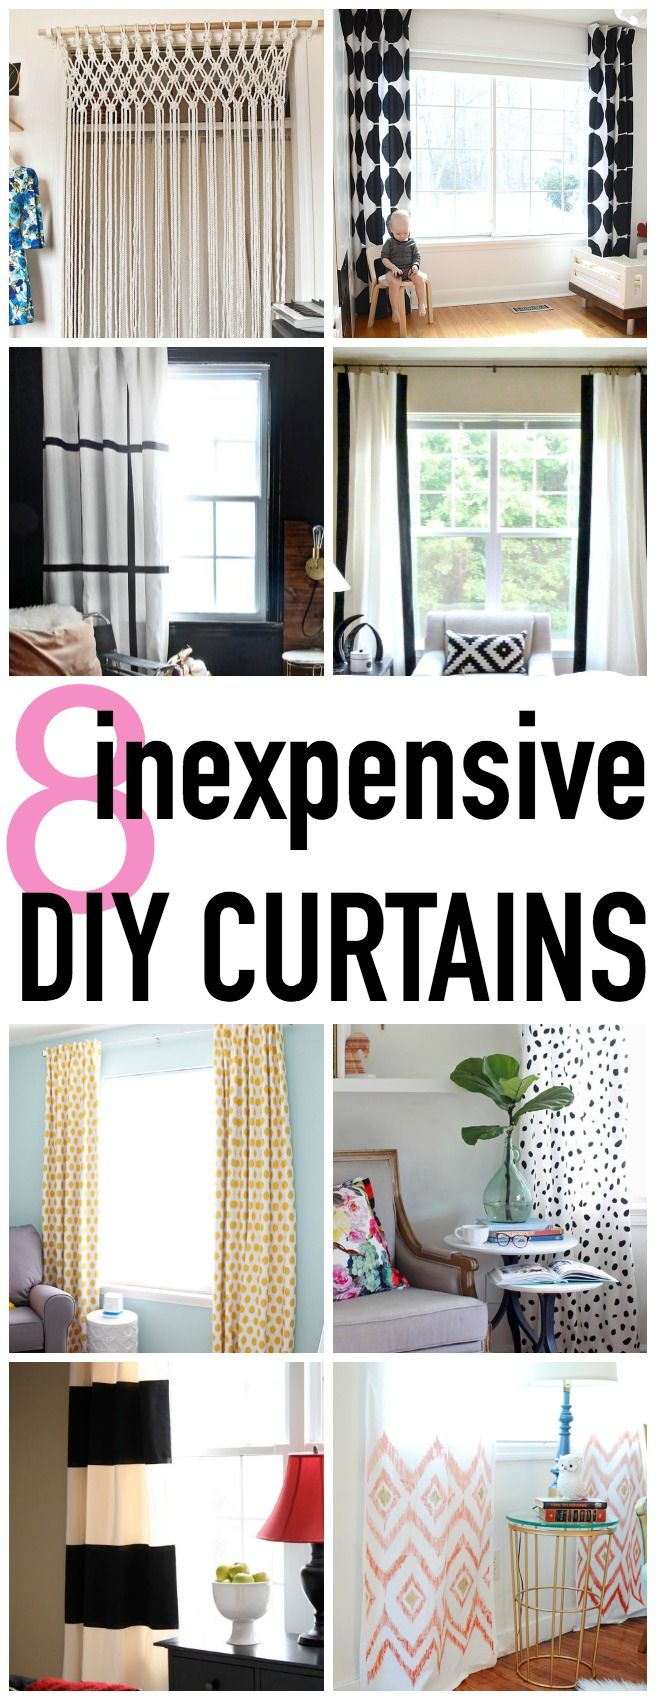 Decor Hacks 8 Super Stylish And Easy Diy Curtain Tutorials Click For More Ideas